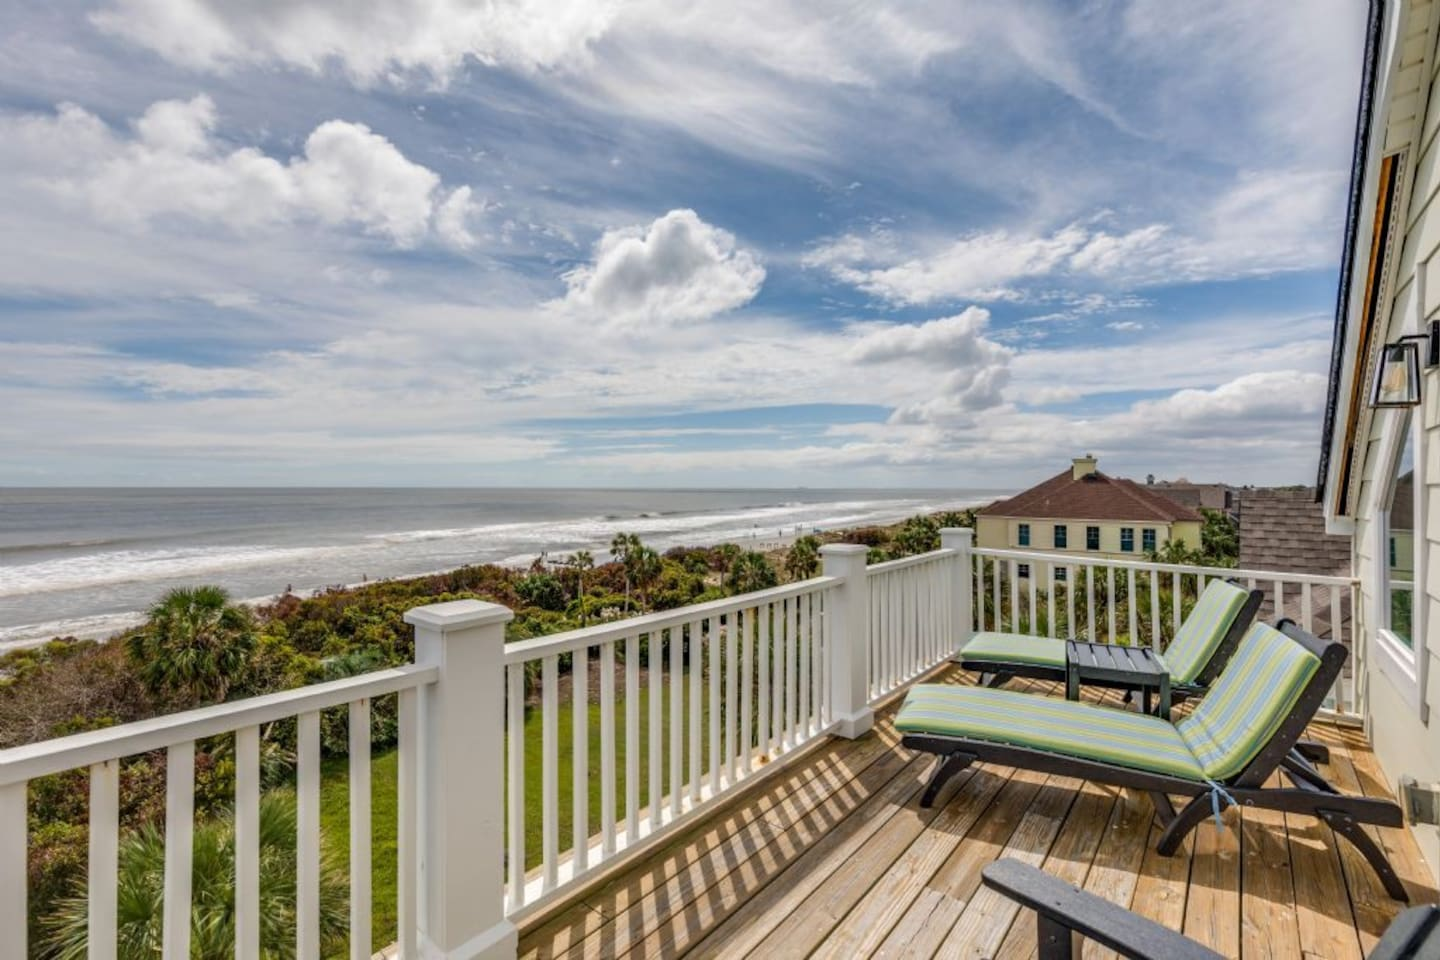 Beach View from the Private Master Bedroom Balcony